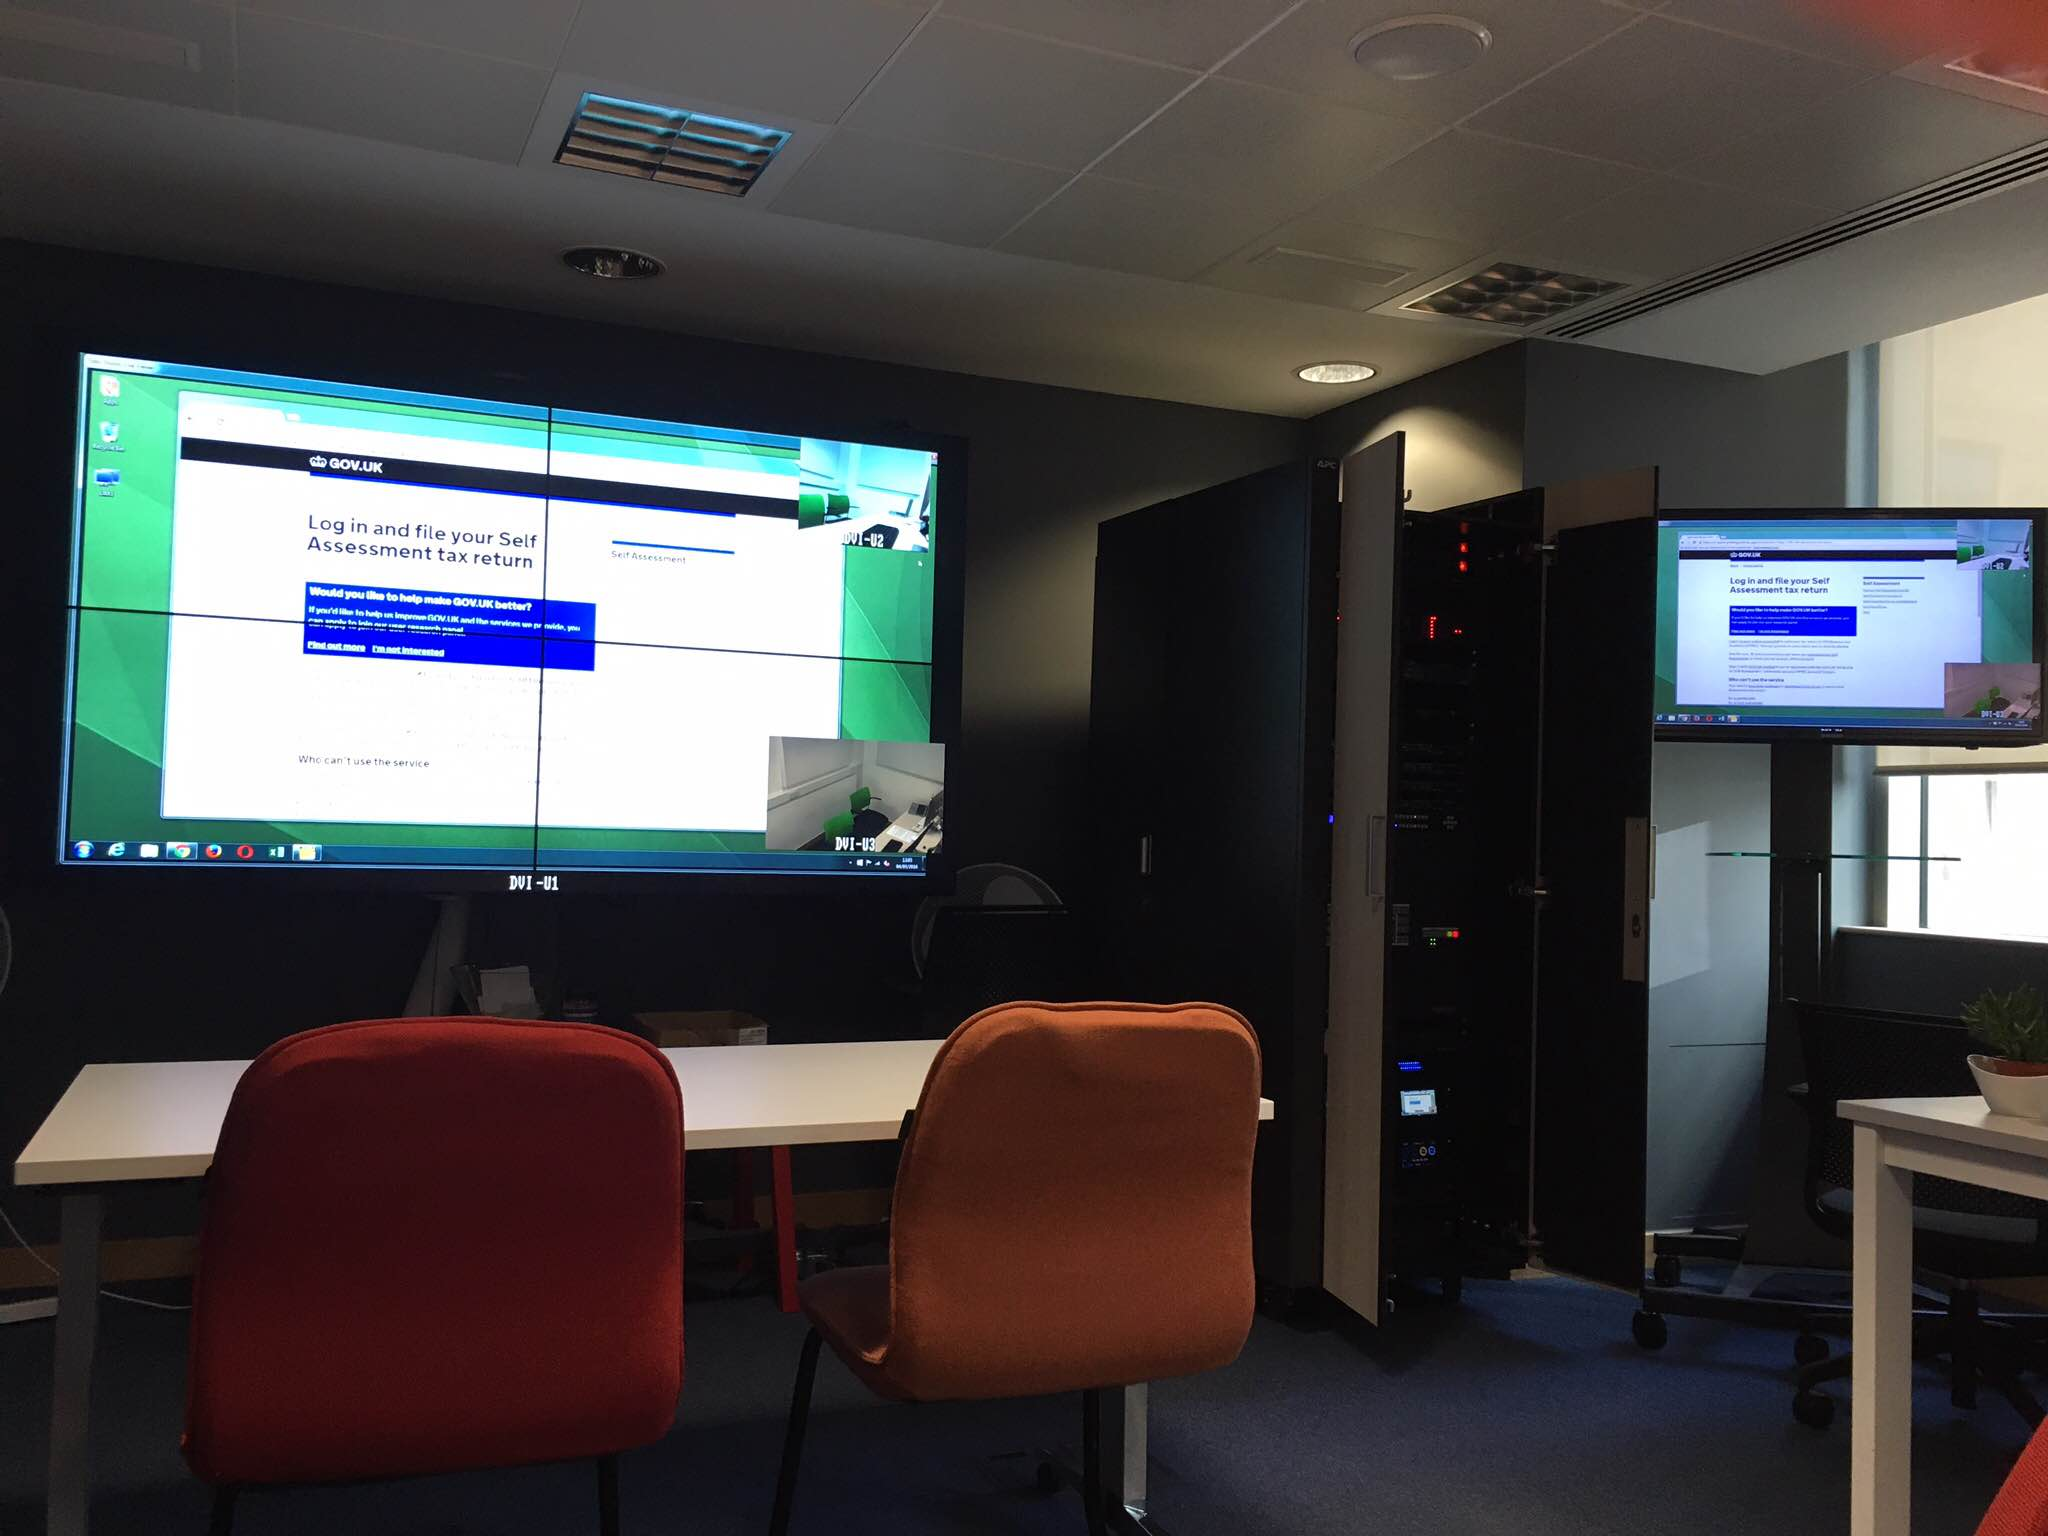 Photo of large screen in user research room displaying the self assessment tax return page on GOV.UK